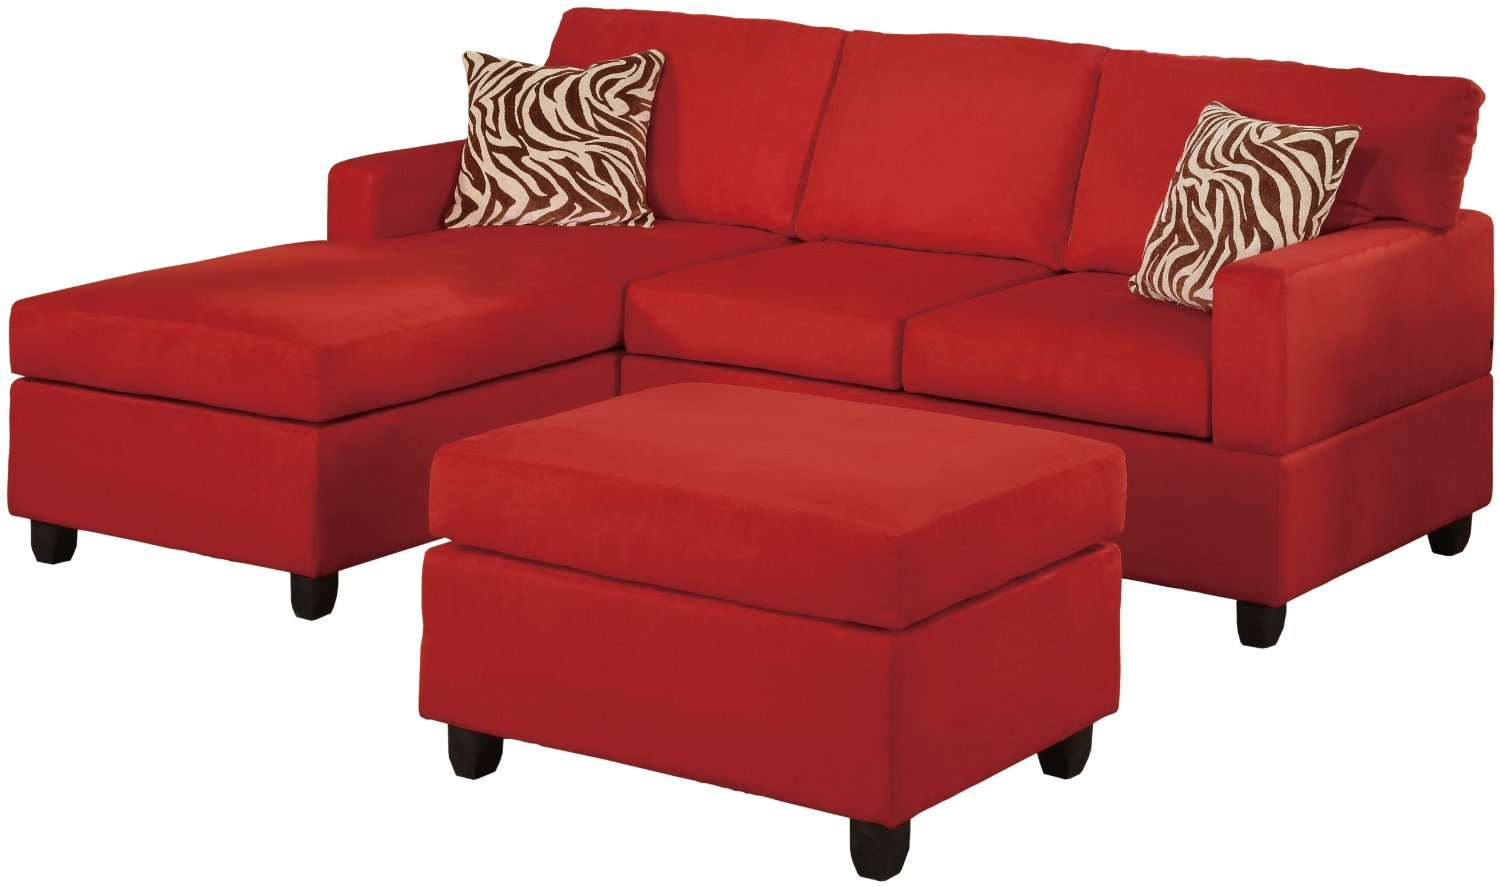 Microfiber sectional sofa set 3 piece red reversible for Microfiber sectional sofa